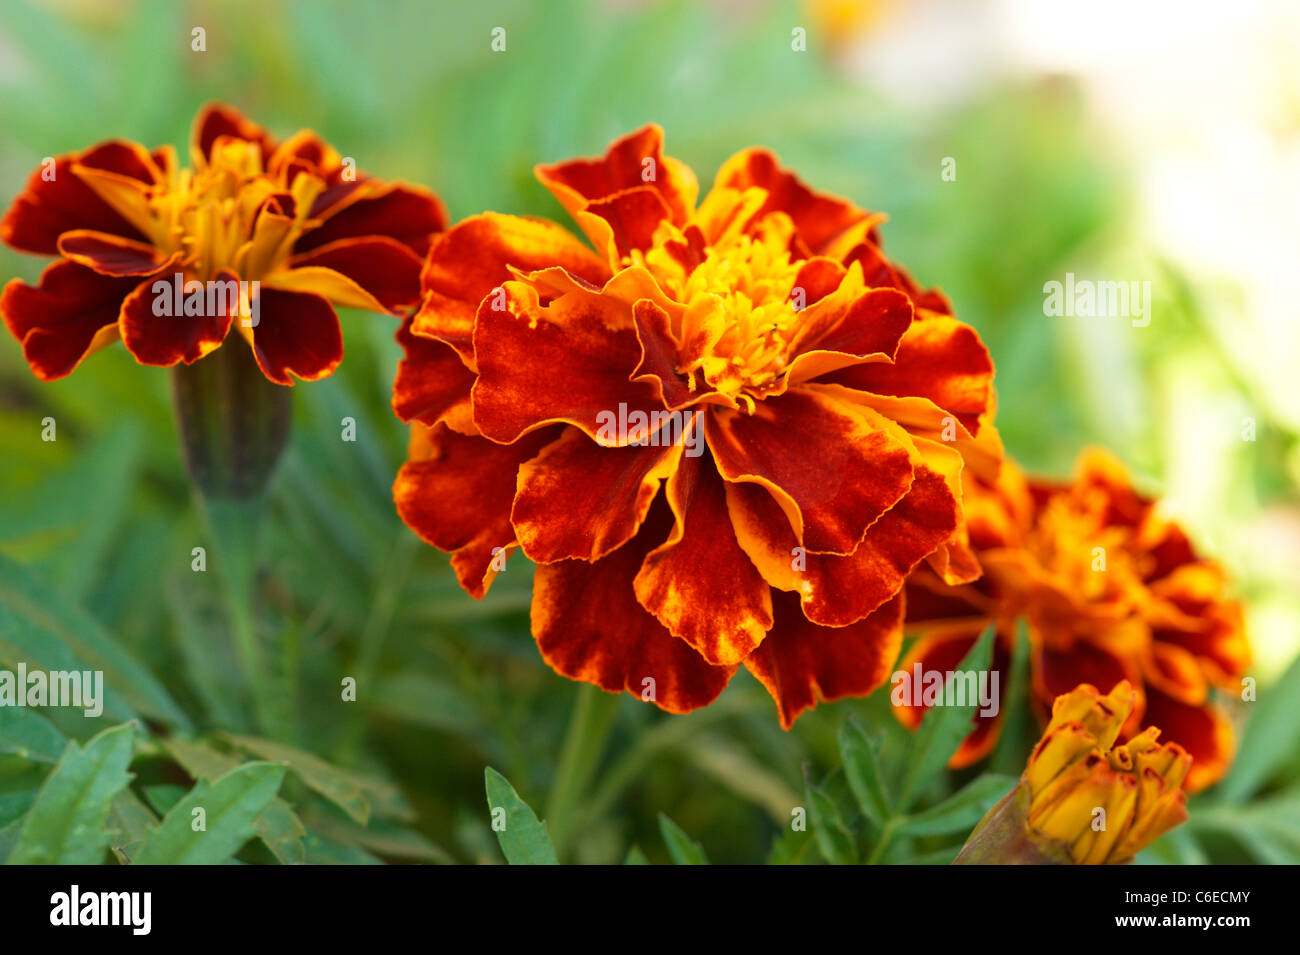 marigolds tagetes 'patula' compositae planted to deter aphids from plants flowers in an organic garden natural - Stock Image